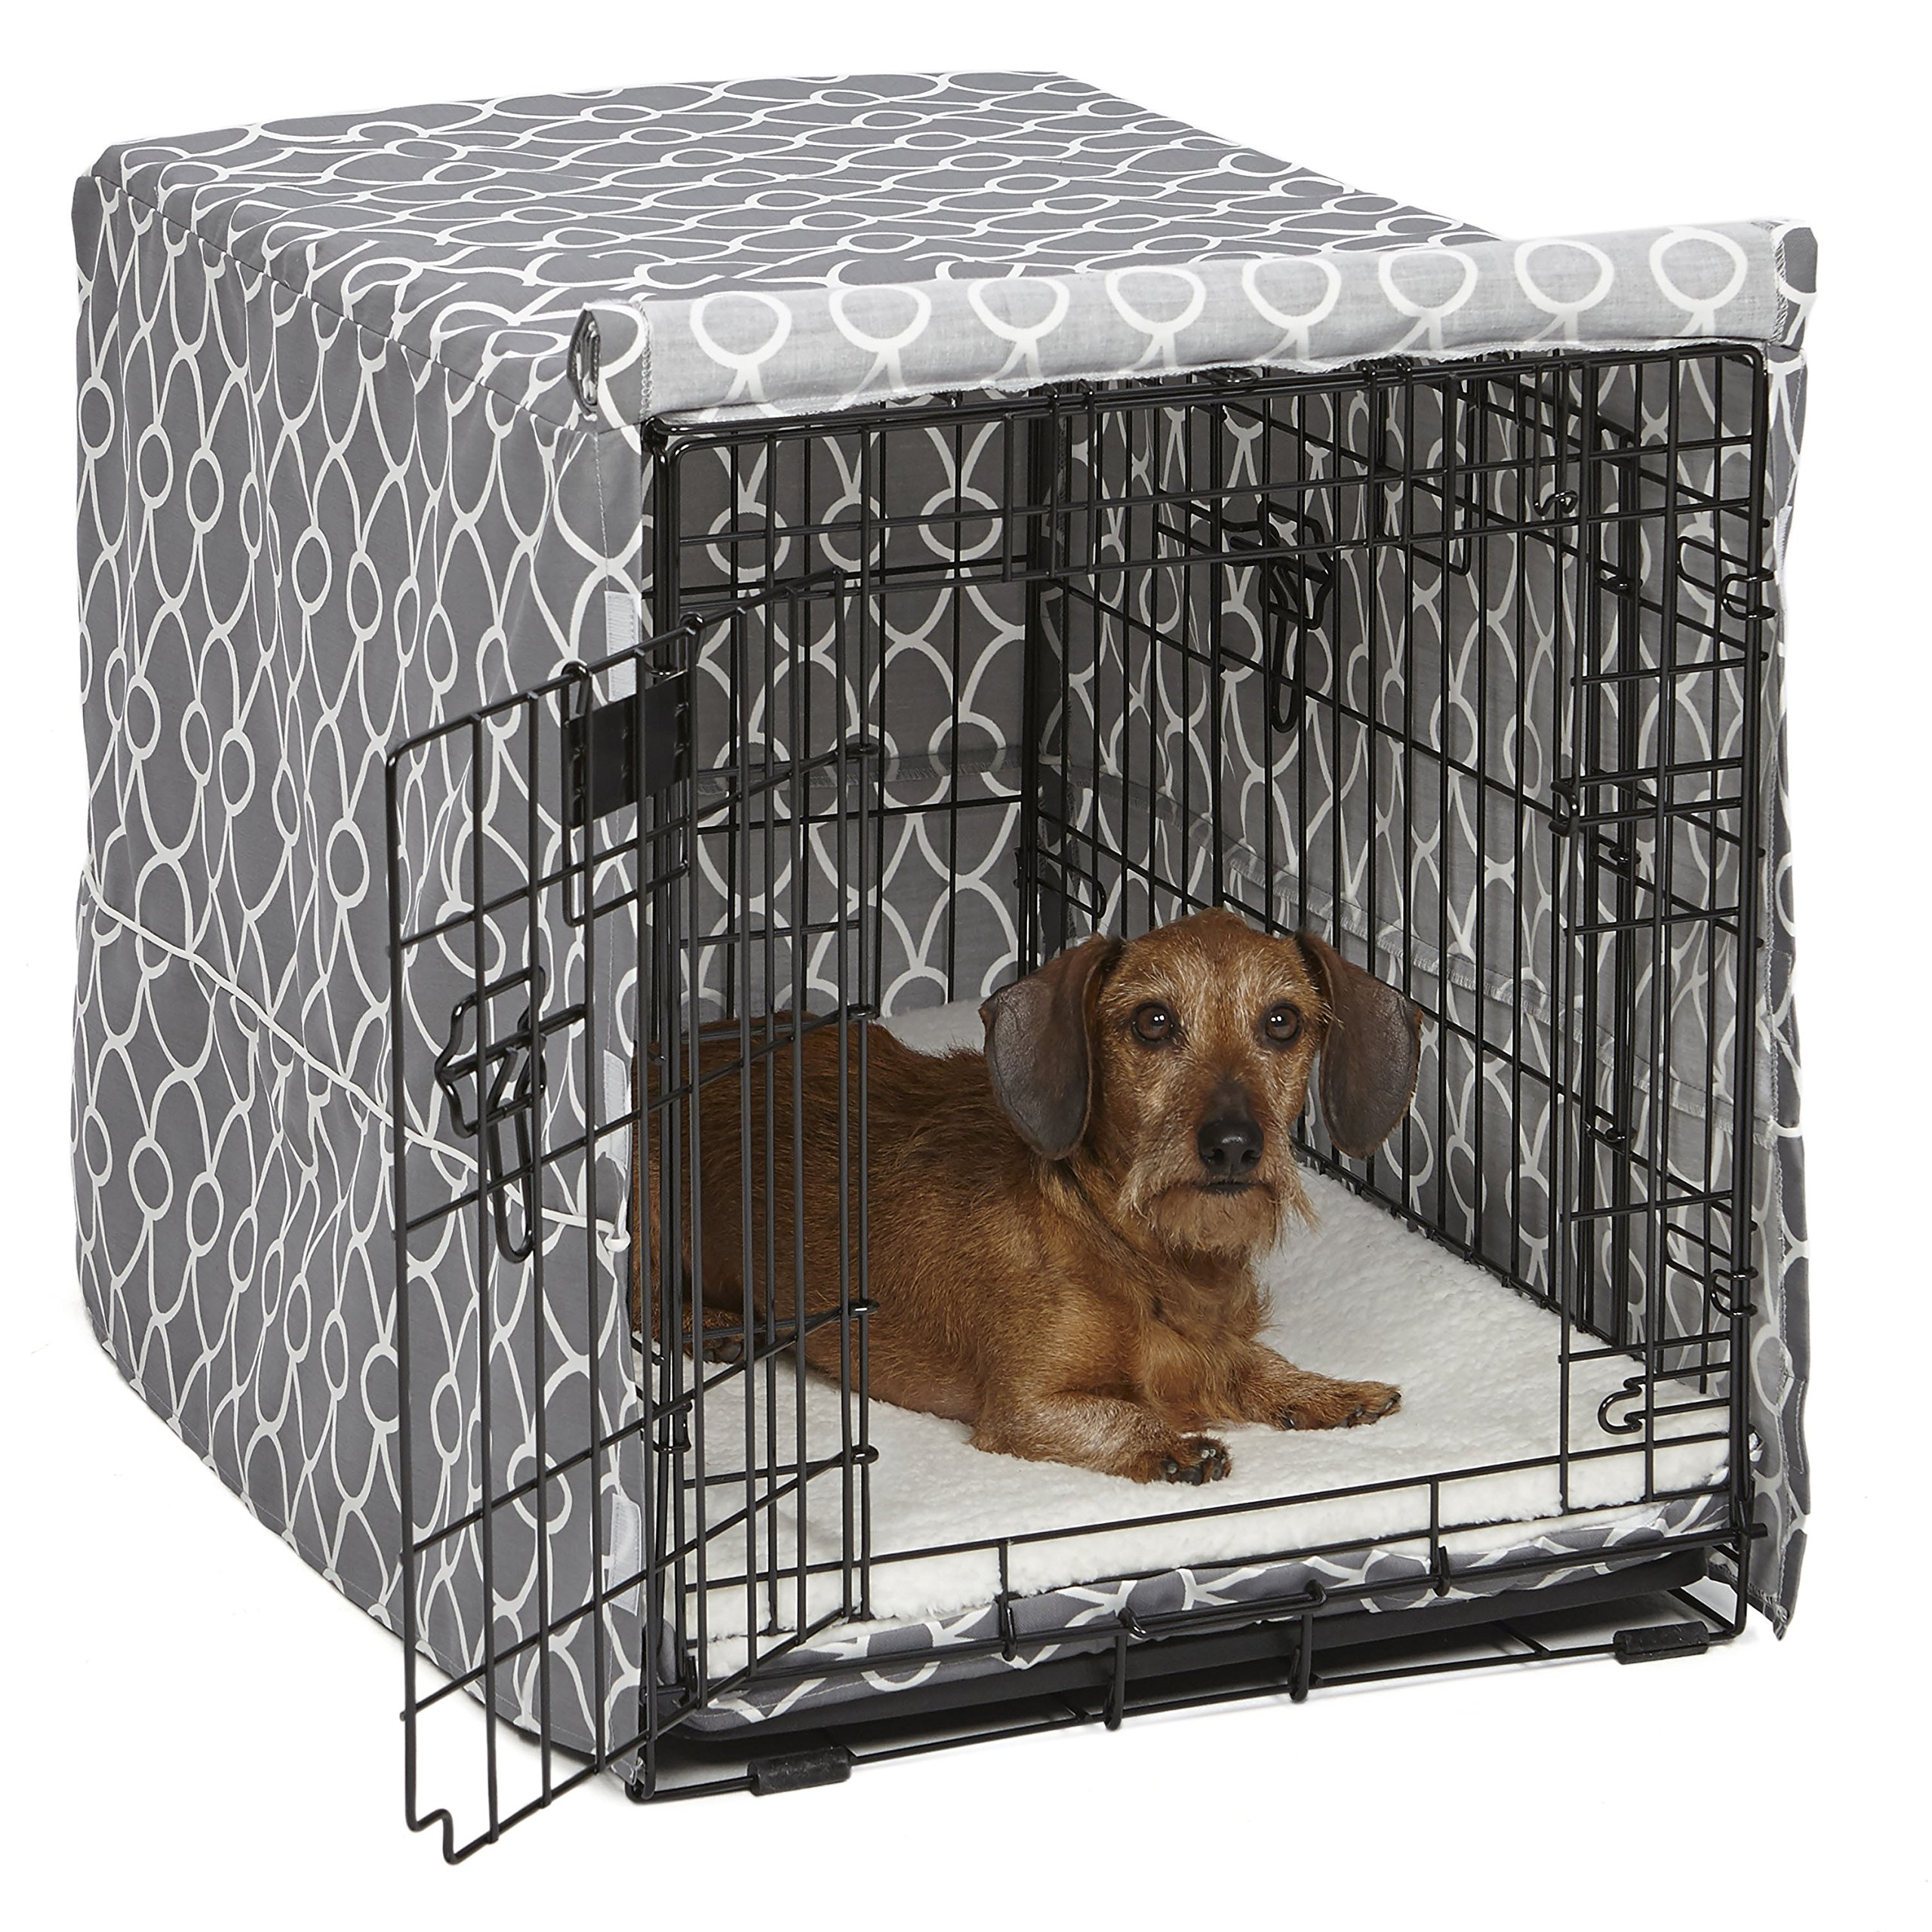 Midwest Homes for Pets Dog Crate Cover, Gray Geometric Pattern, 30-Inch by MidWest Homes for Pets